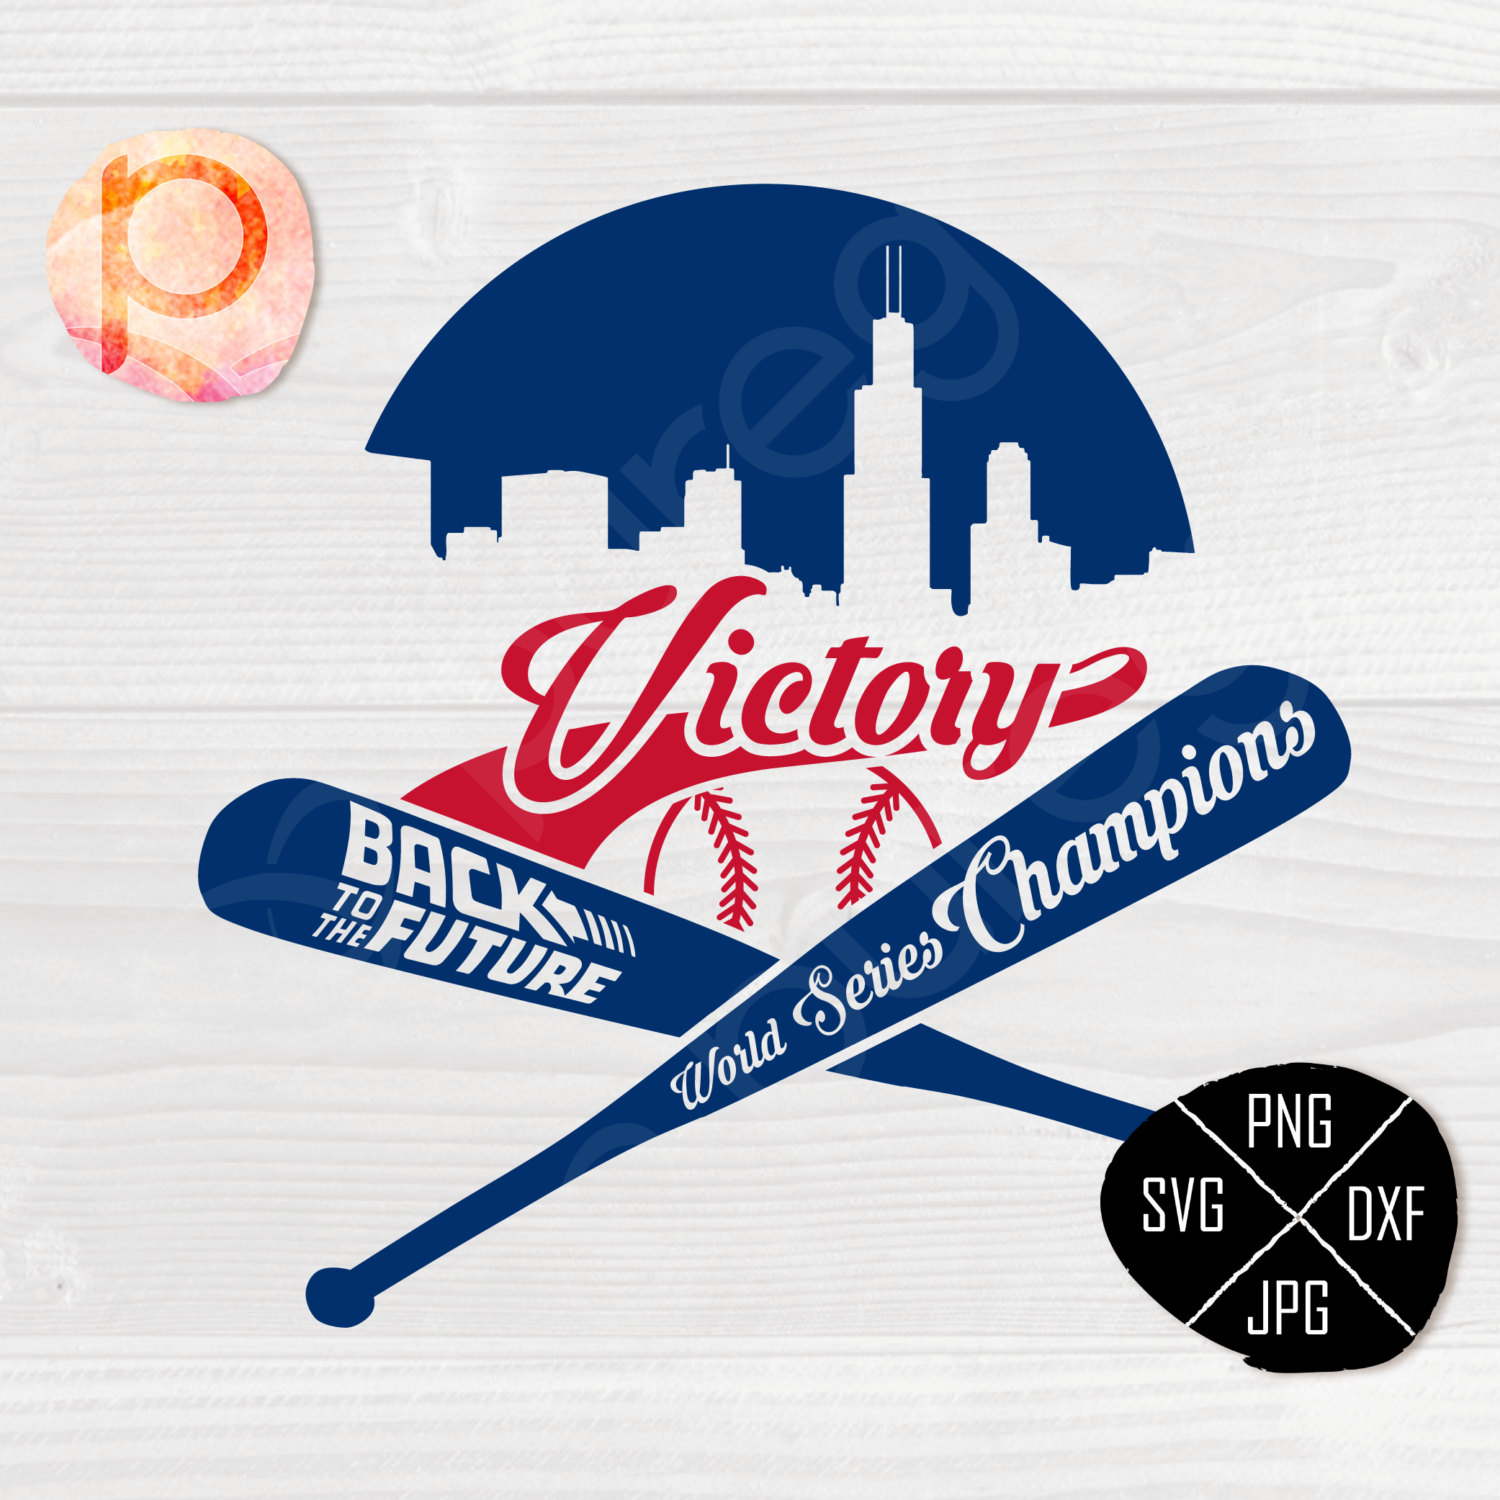 Back To The Future clipart logo A future Champions World Cubs